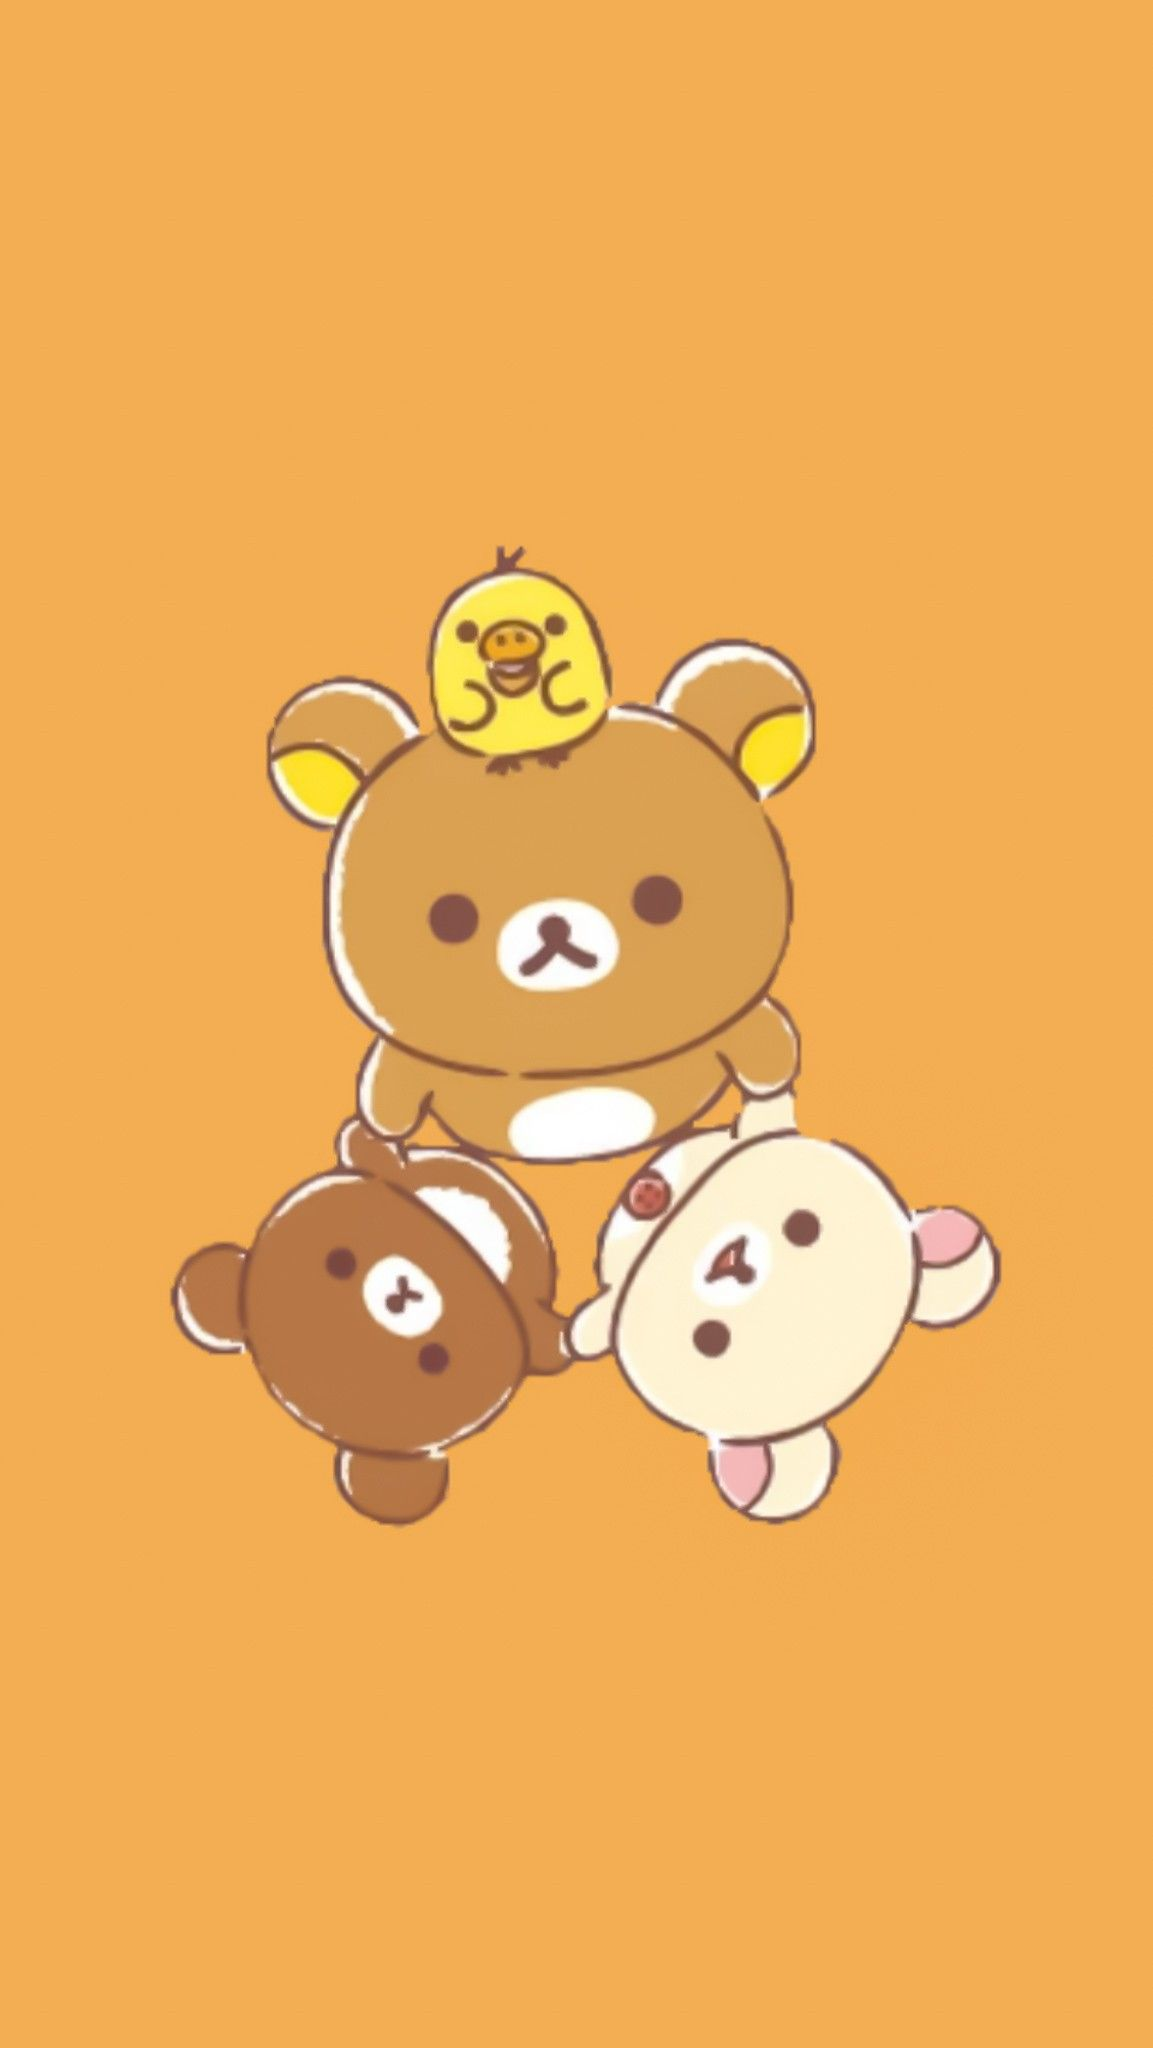 Pin by APOAME on Rilakkuma BG Rilakkuma wallpaper Rilakuma 1153x2048